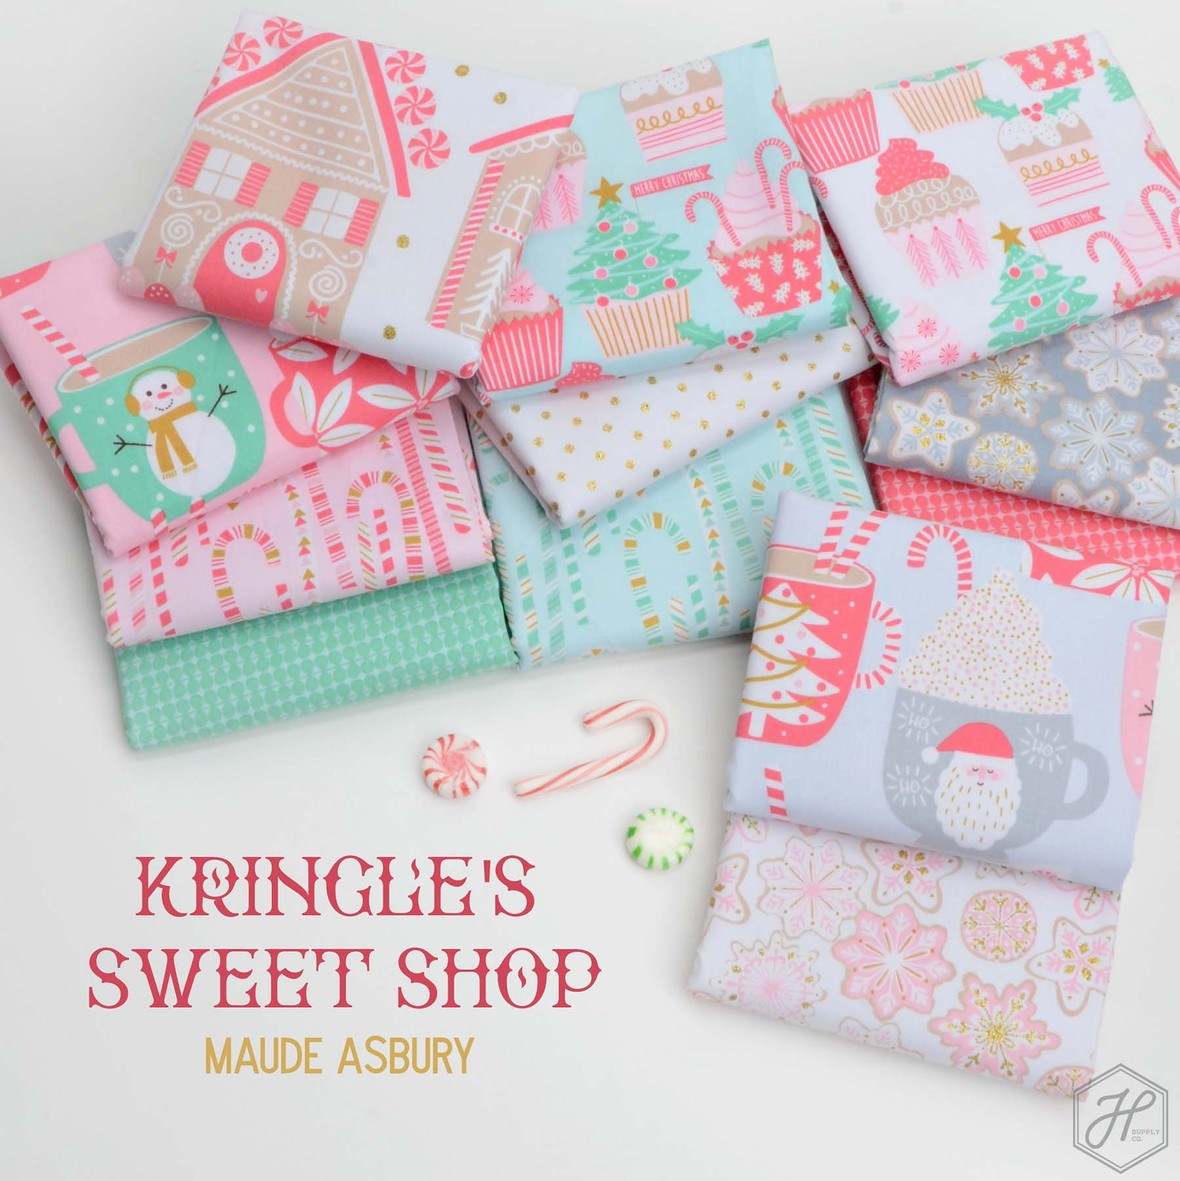 Kringles Sweet Shop Fabric Blend at Hawthorne Supply Co